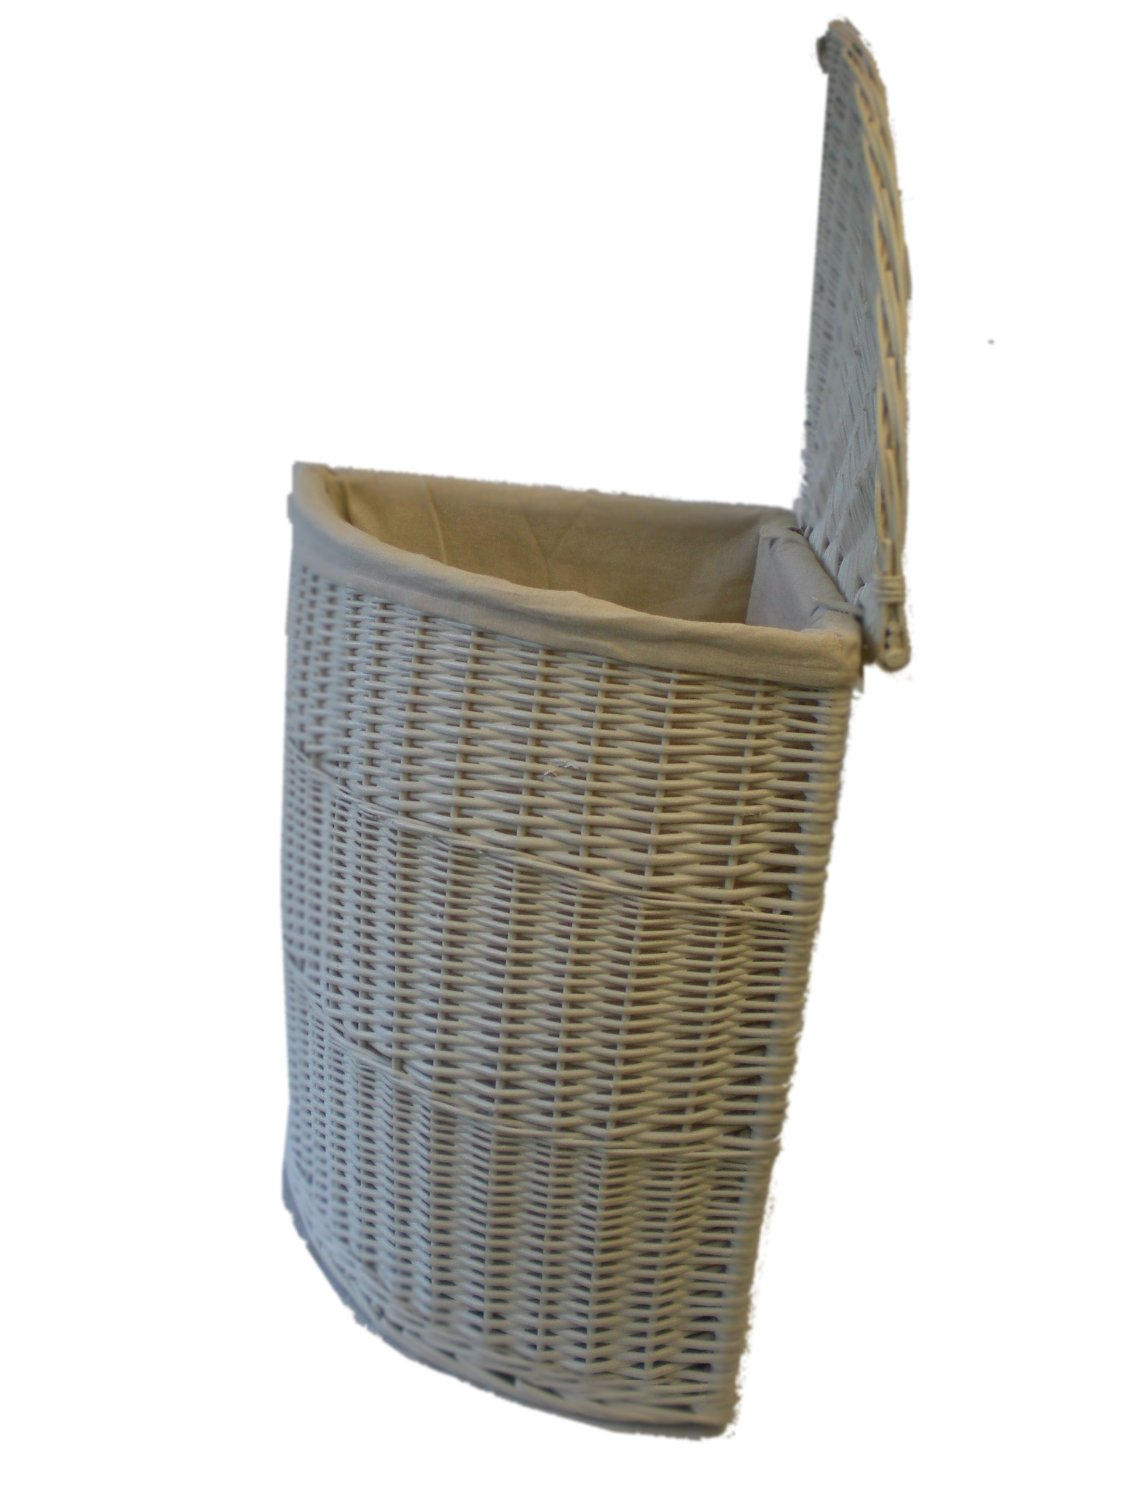 W563 White Laundry Basket - Small